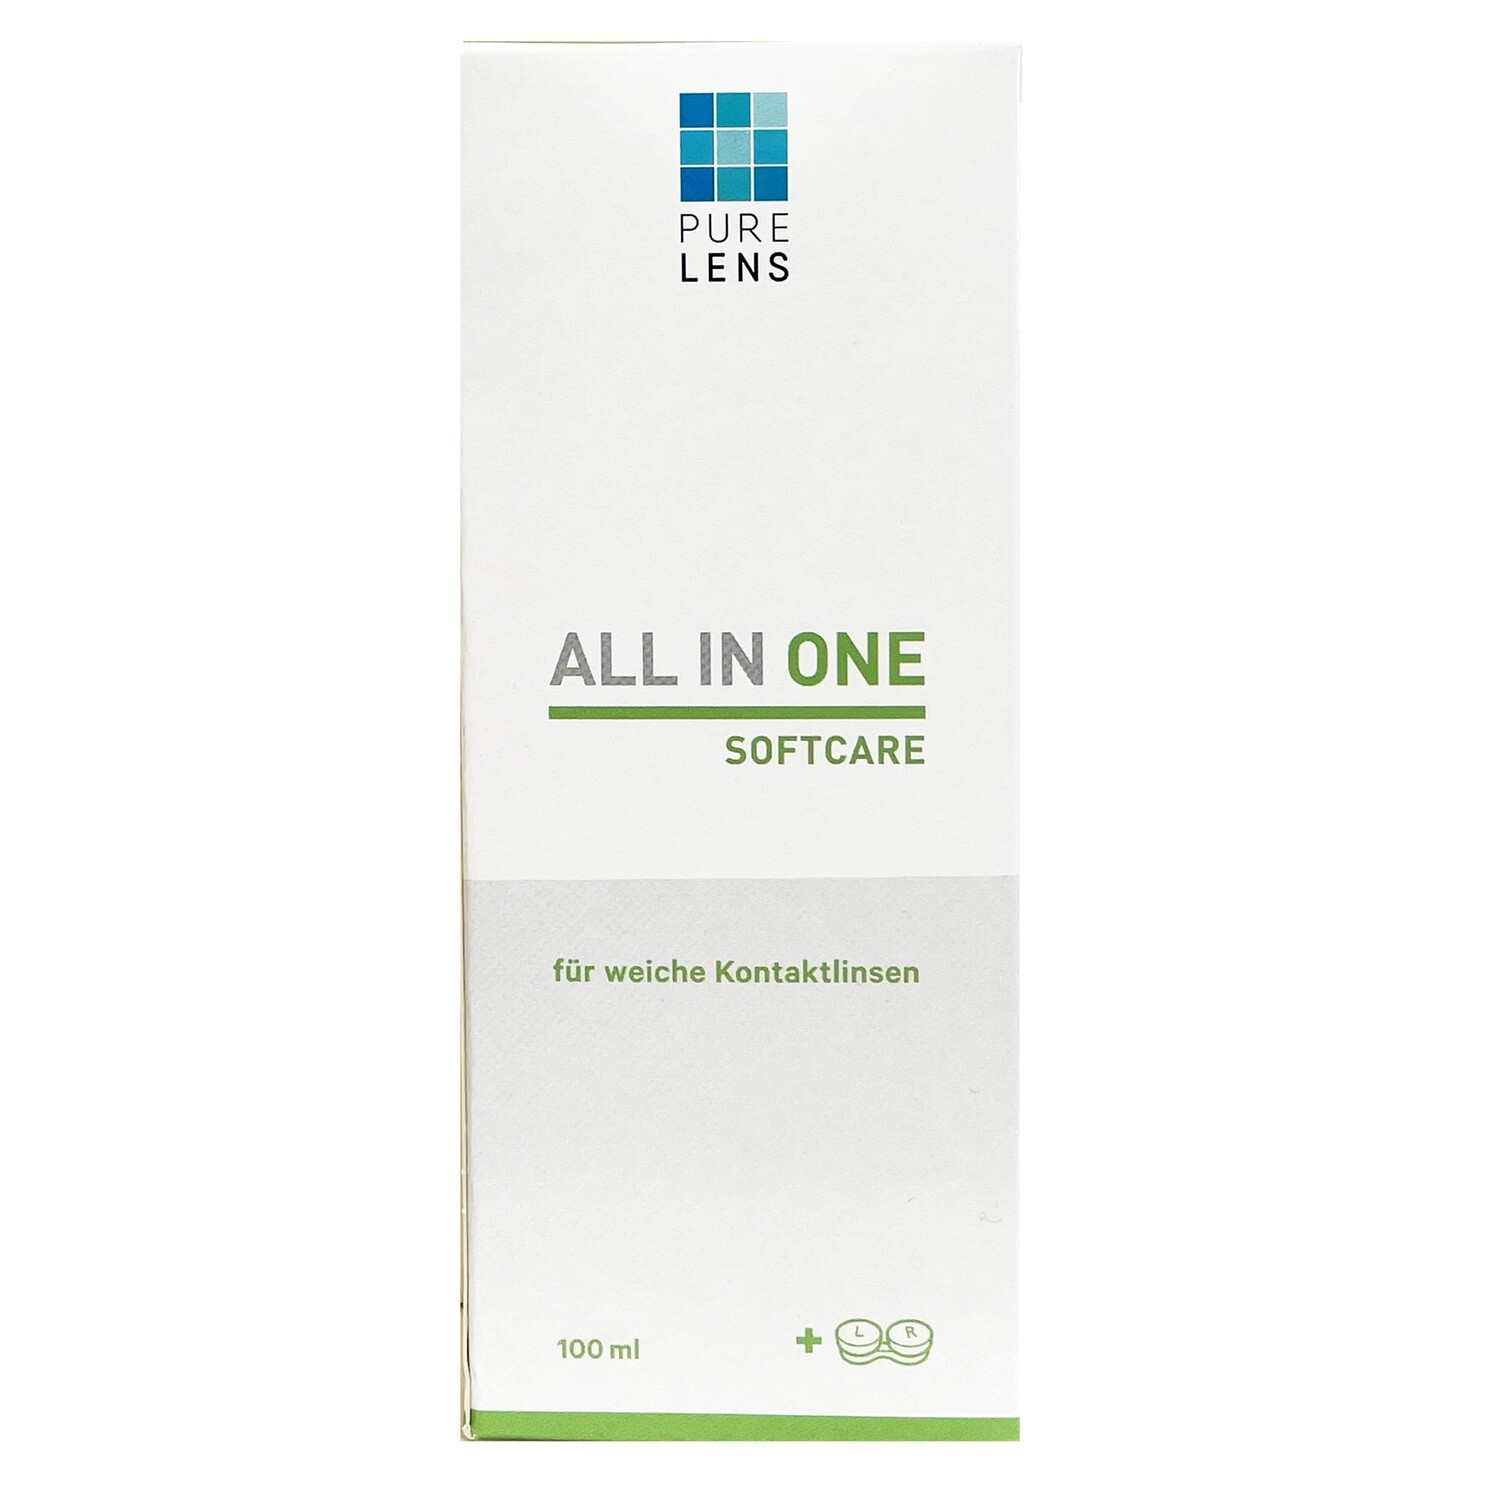 Softcare - All in One (100ml)